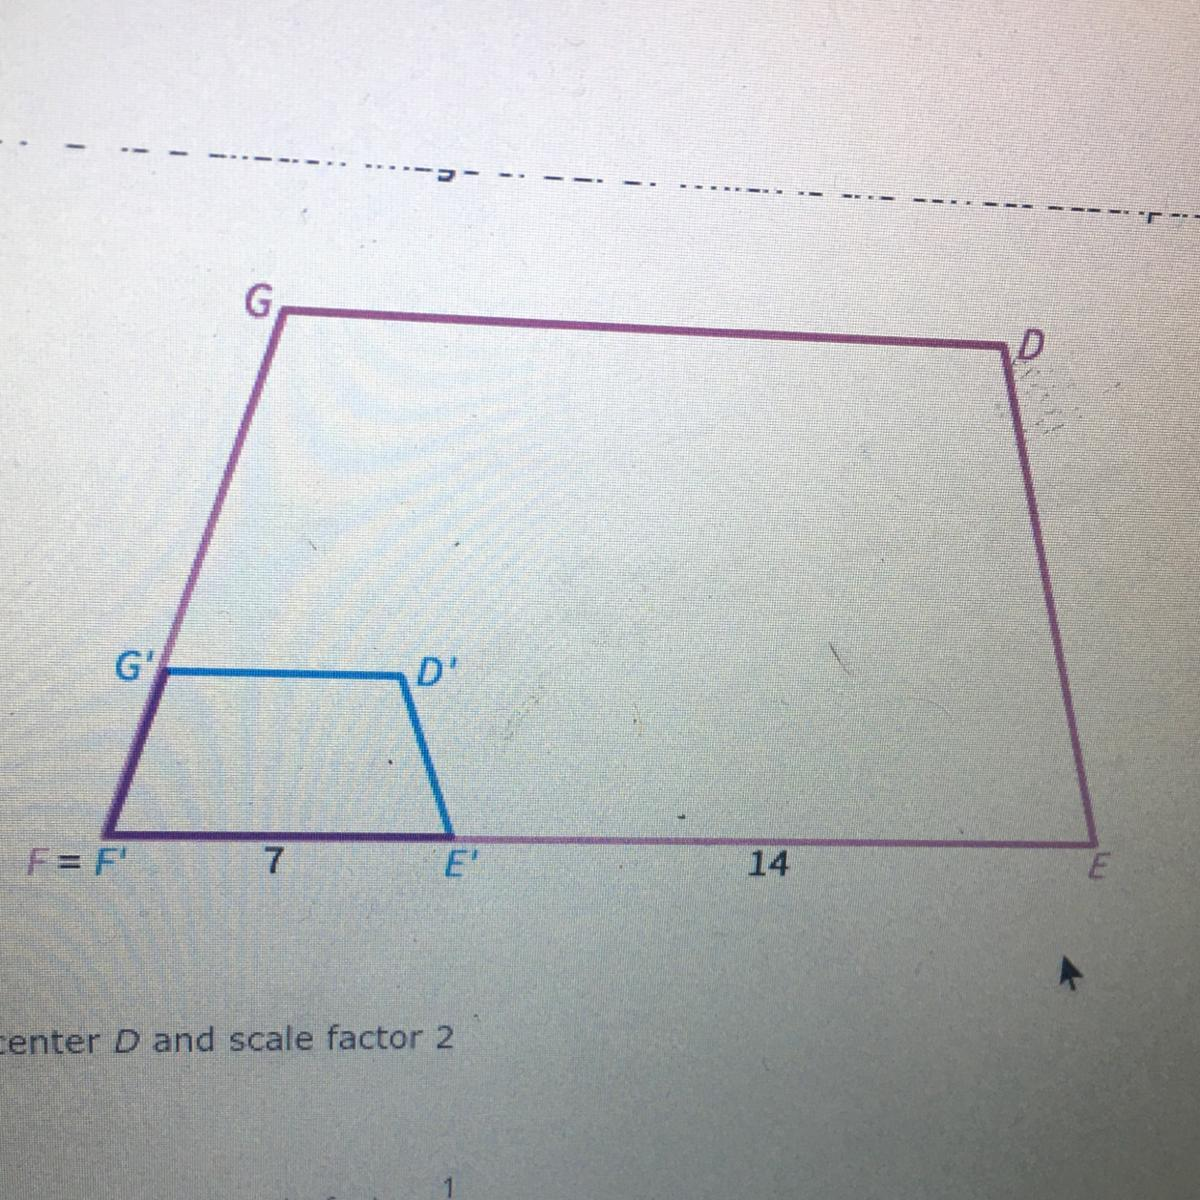 D E F G Is A Dilation Image Of Defg Which Is The Correct